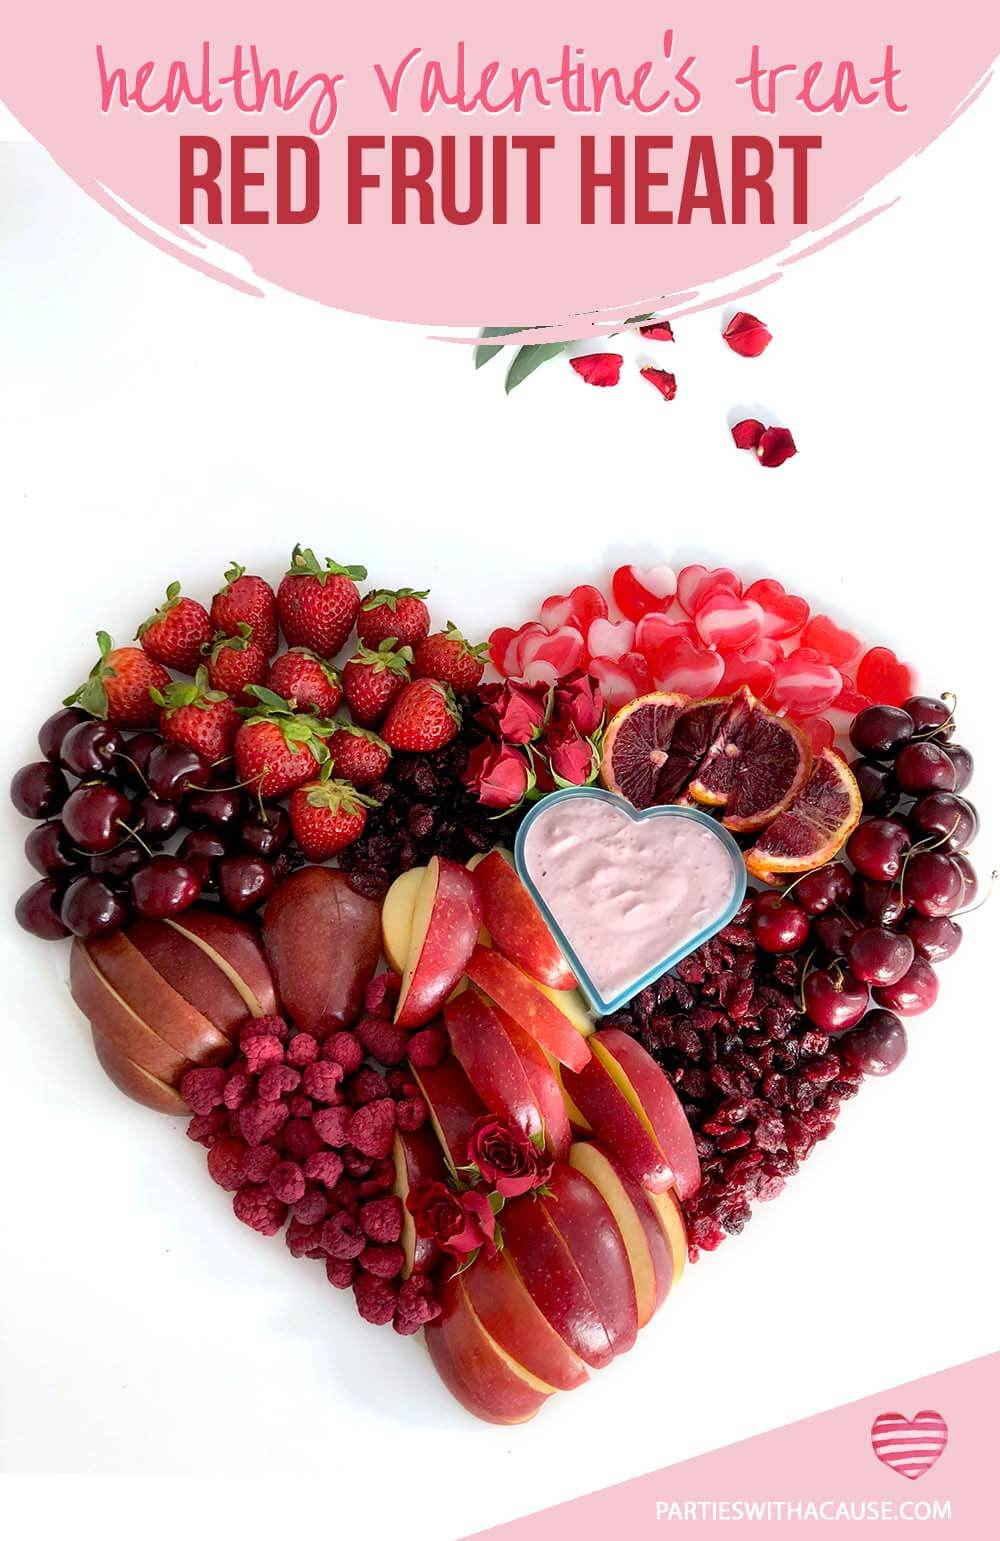 Healthy Valentine's Treat red food fruit heart by Salt Lake party stylist